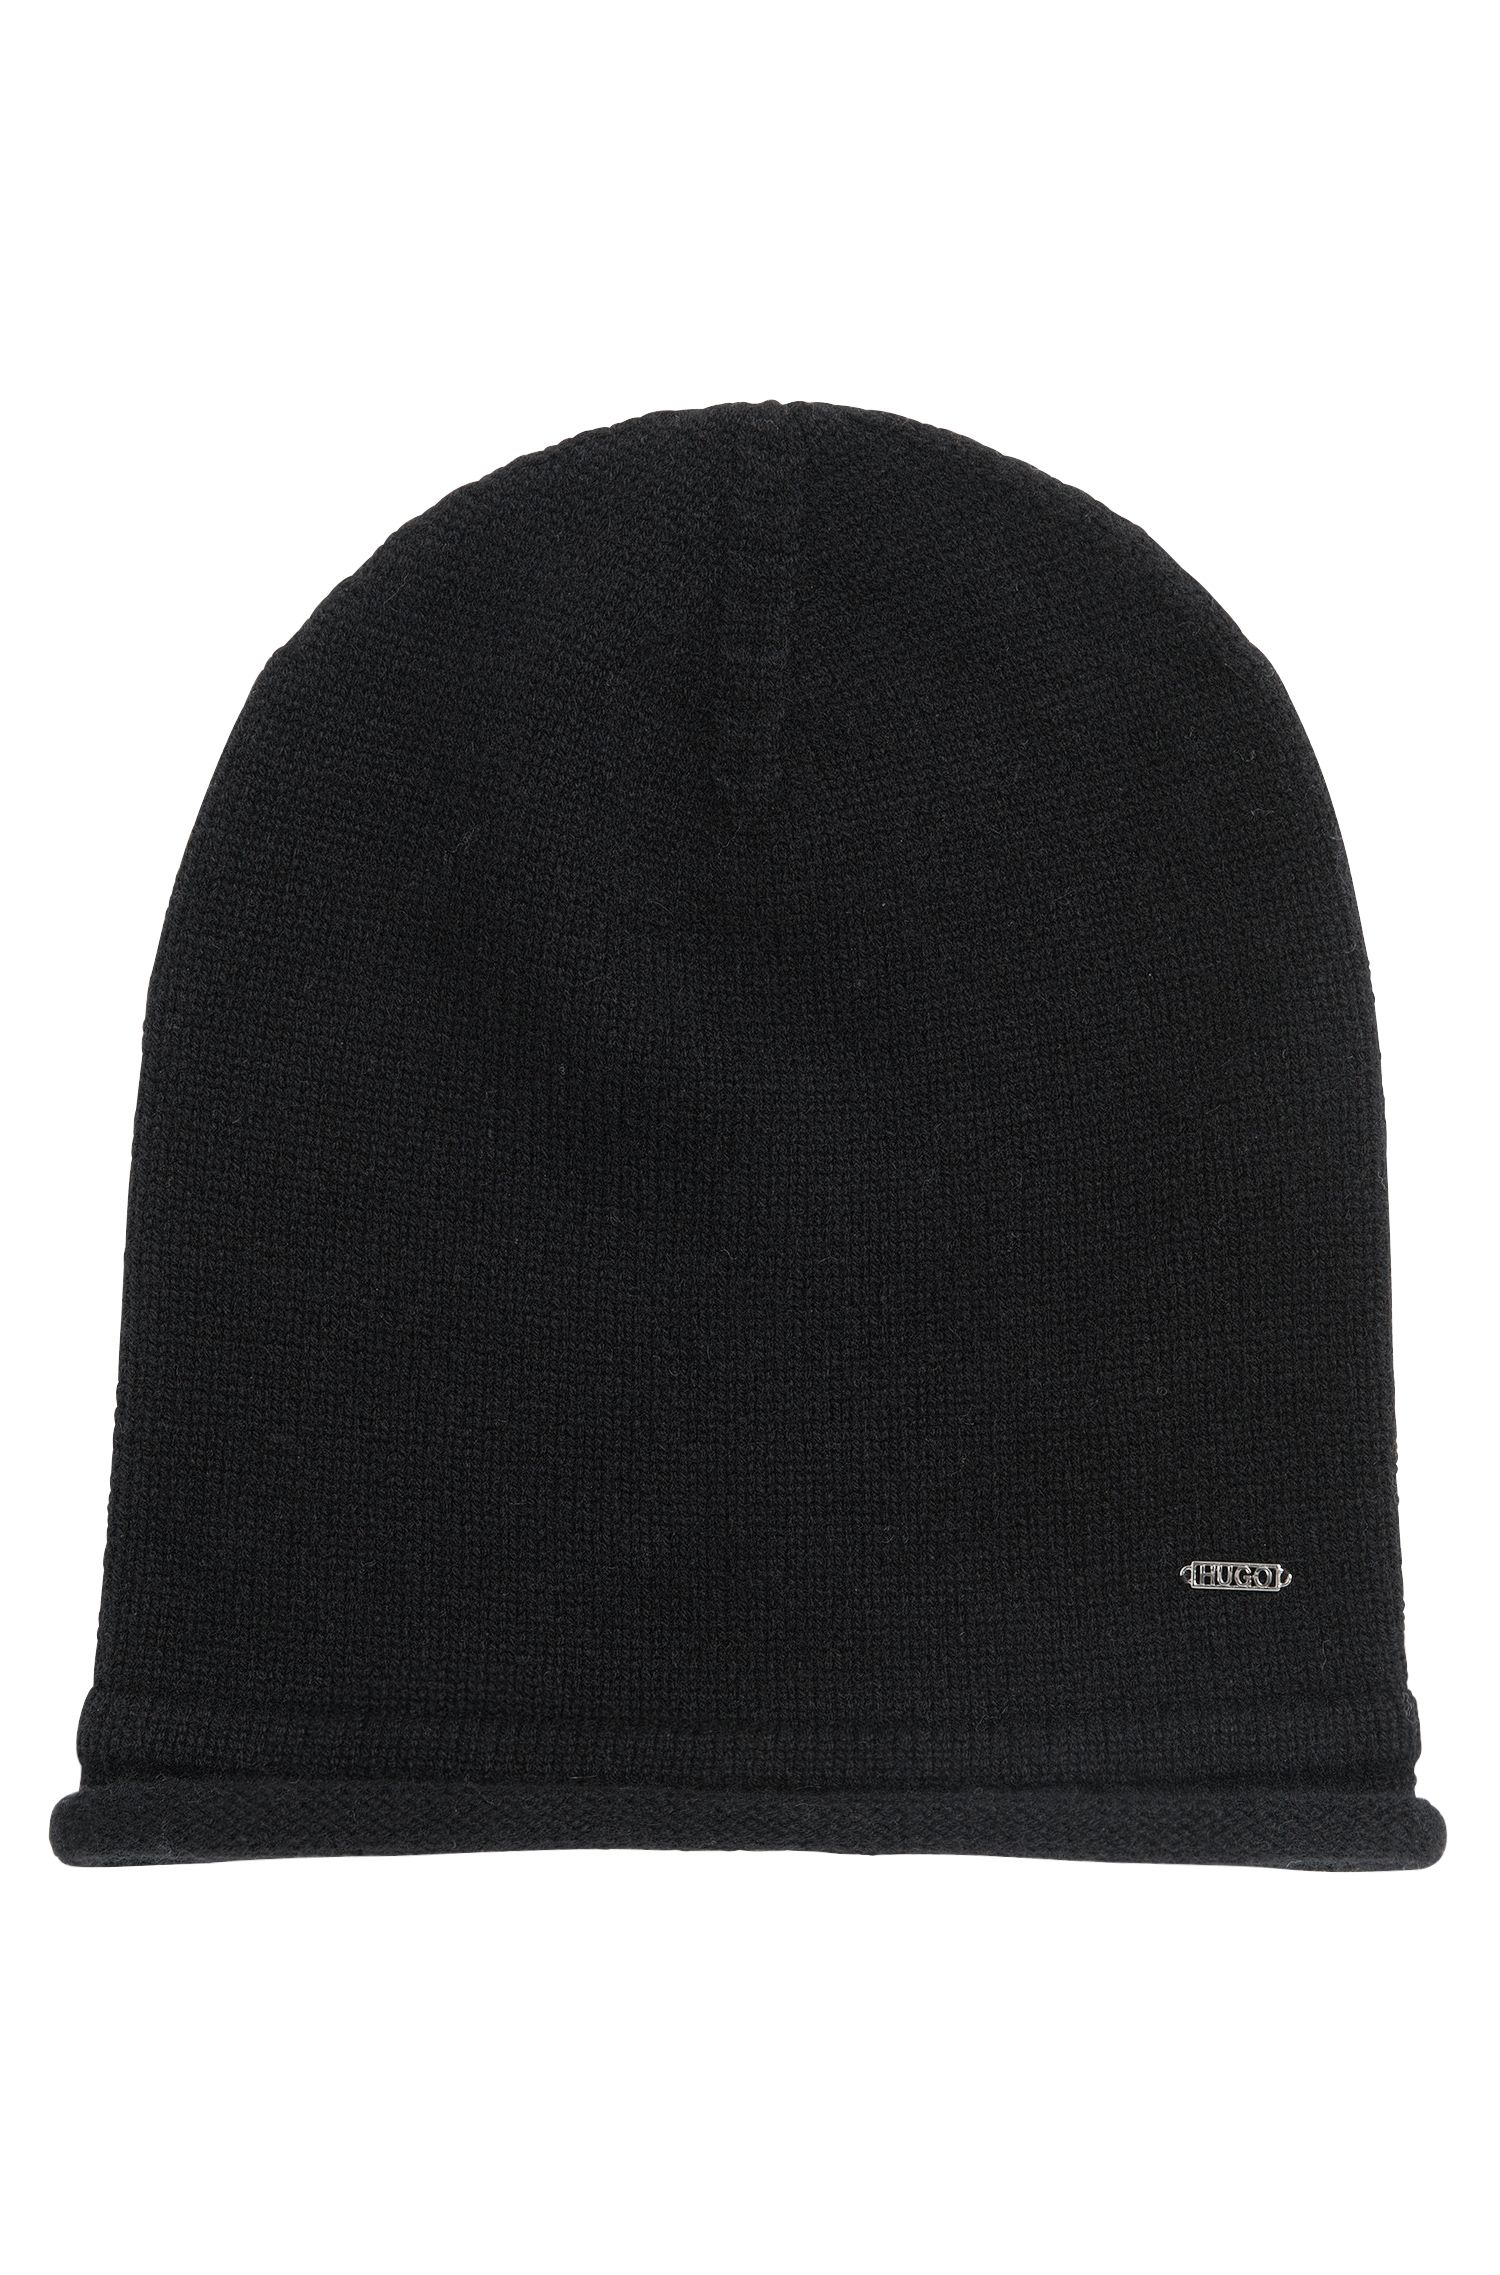 Beanie hat in pure cashmere